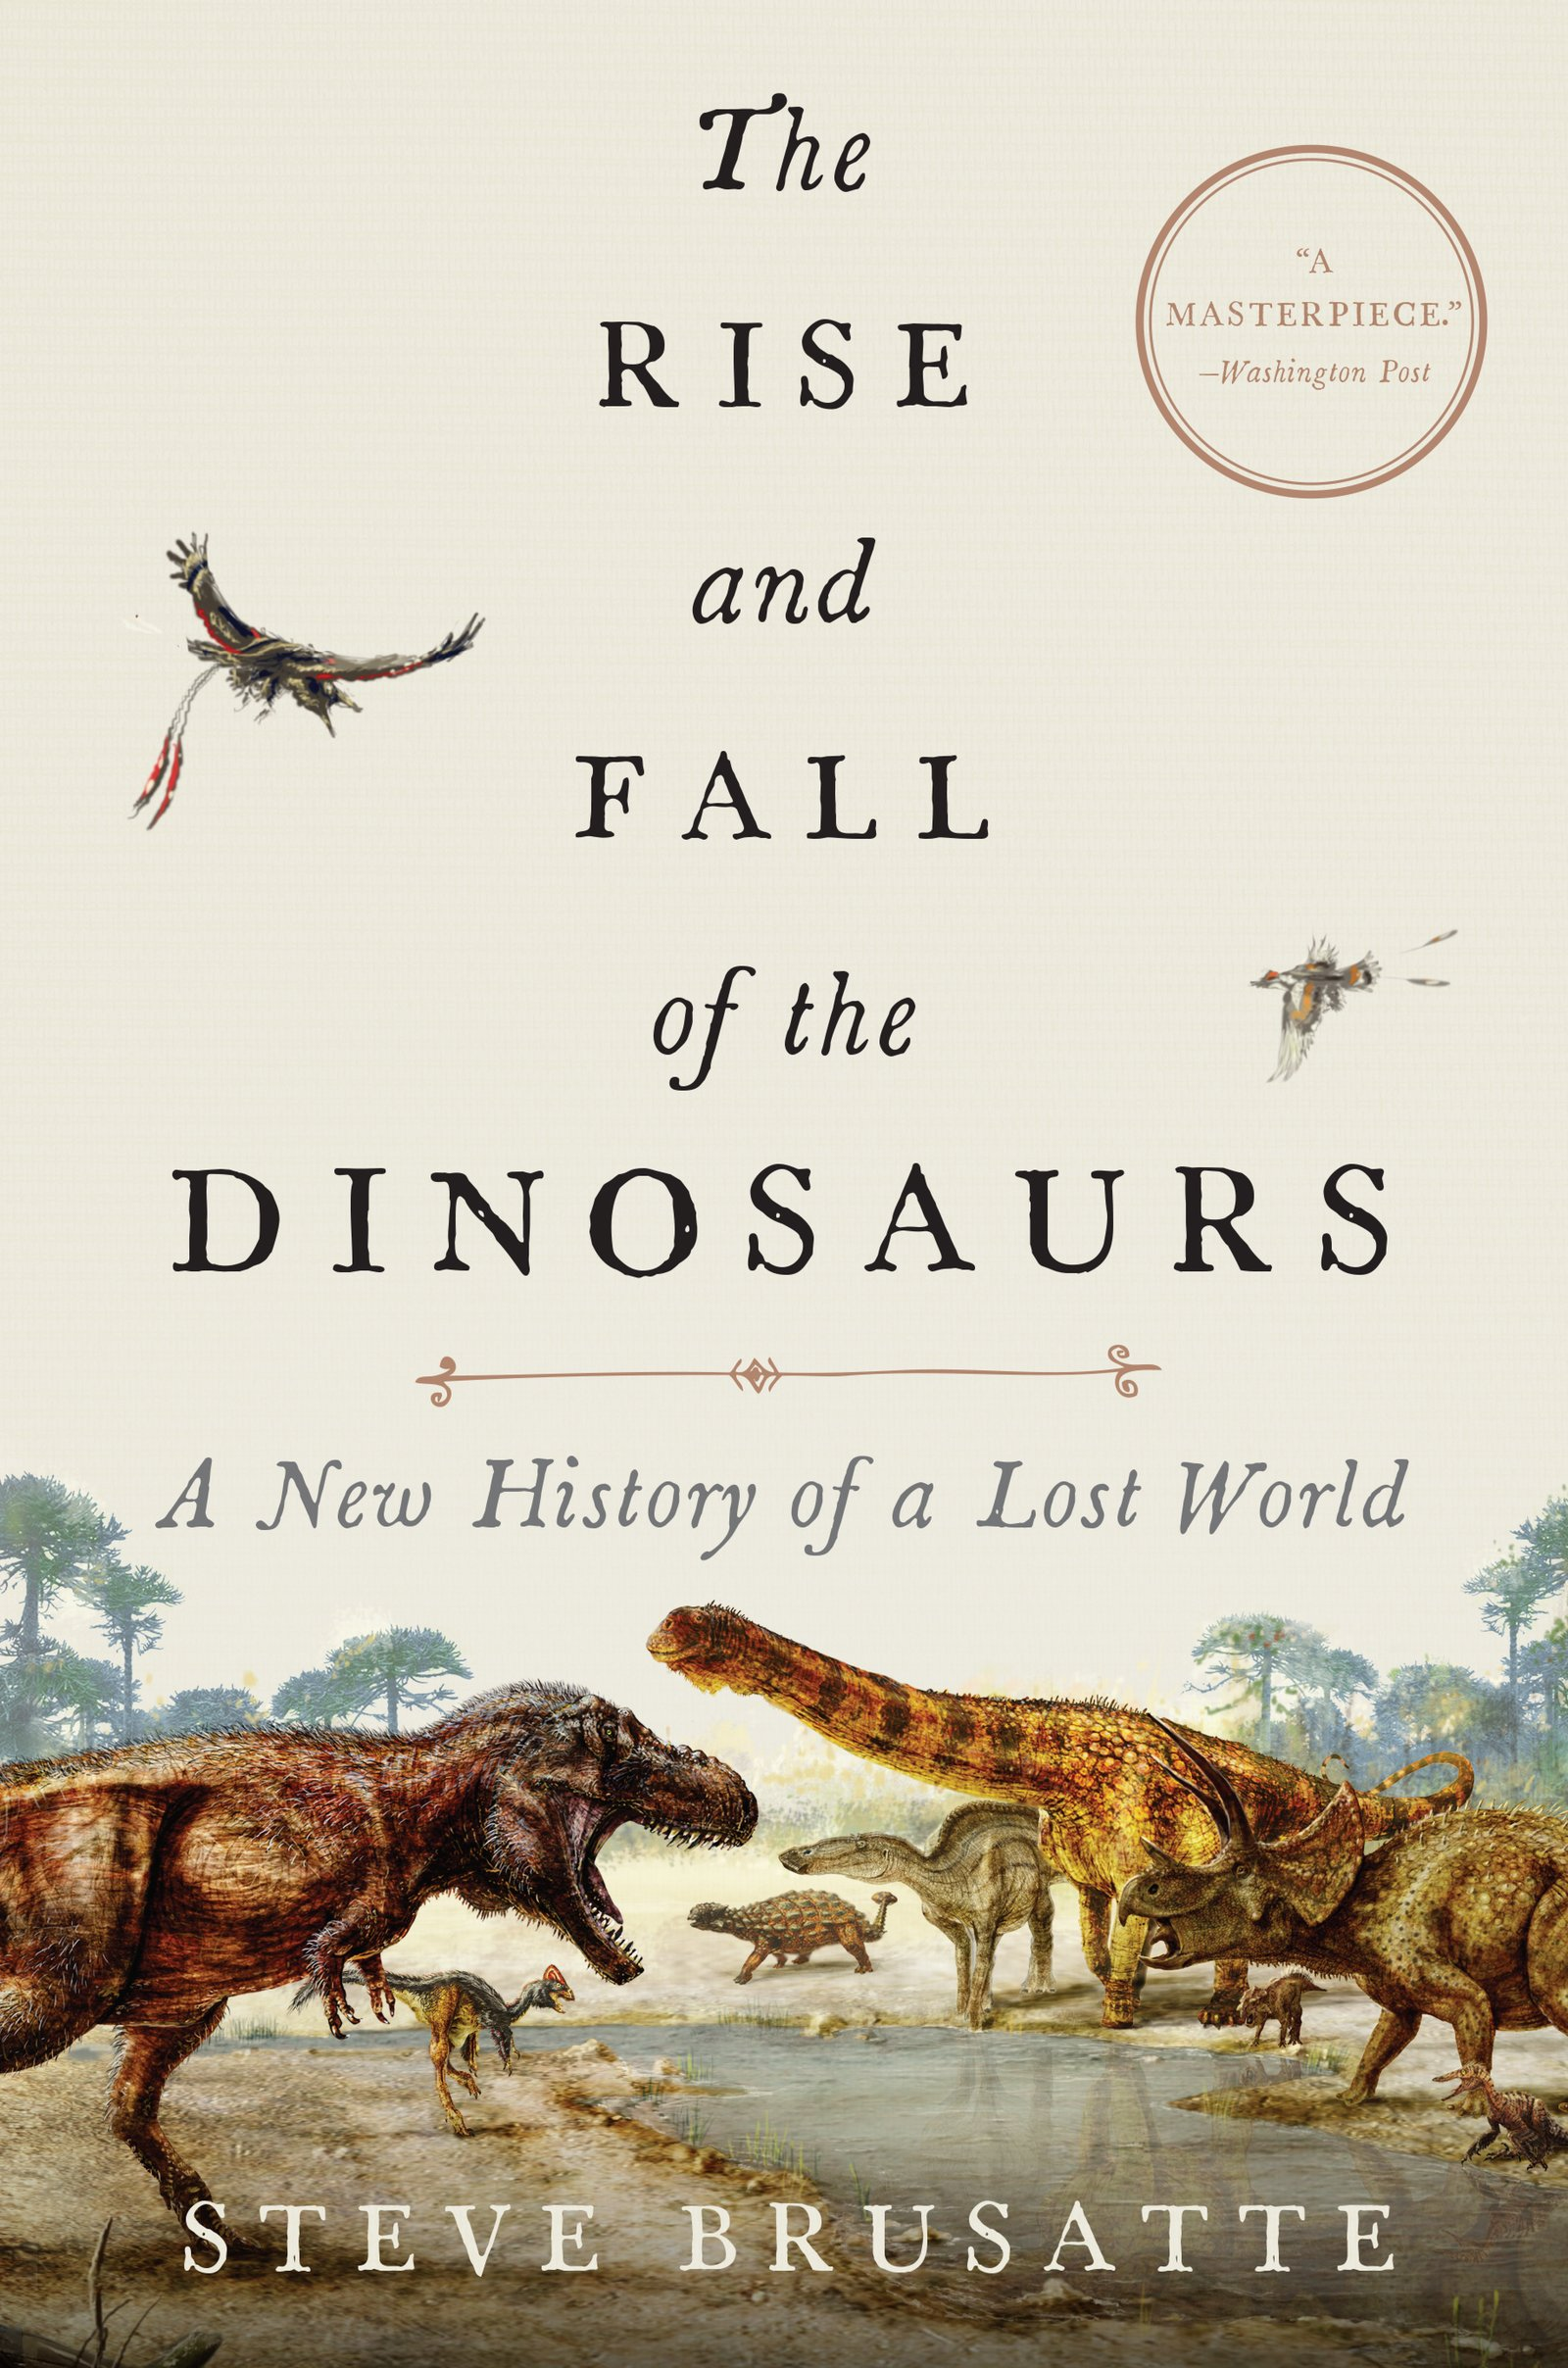 The Rise and Fall of the Dinosaurs: A New History of a Lost World pdf epub